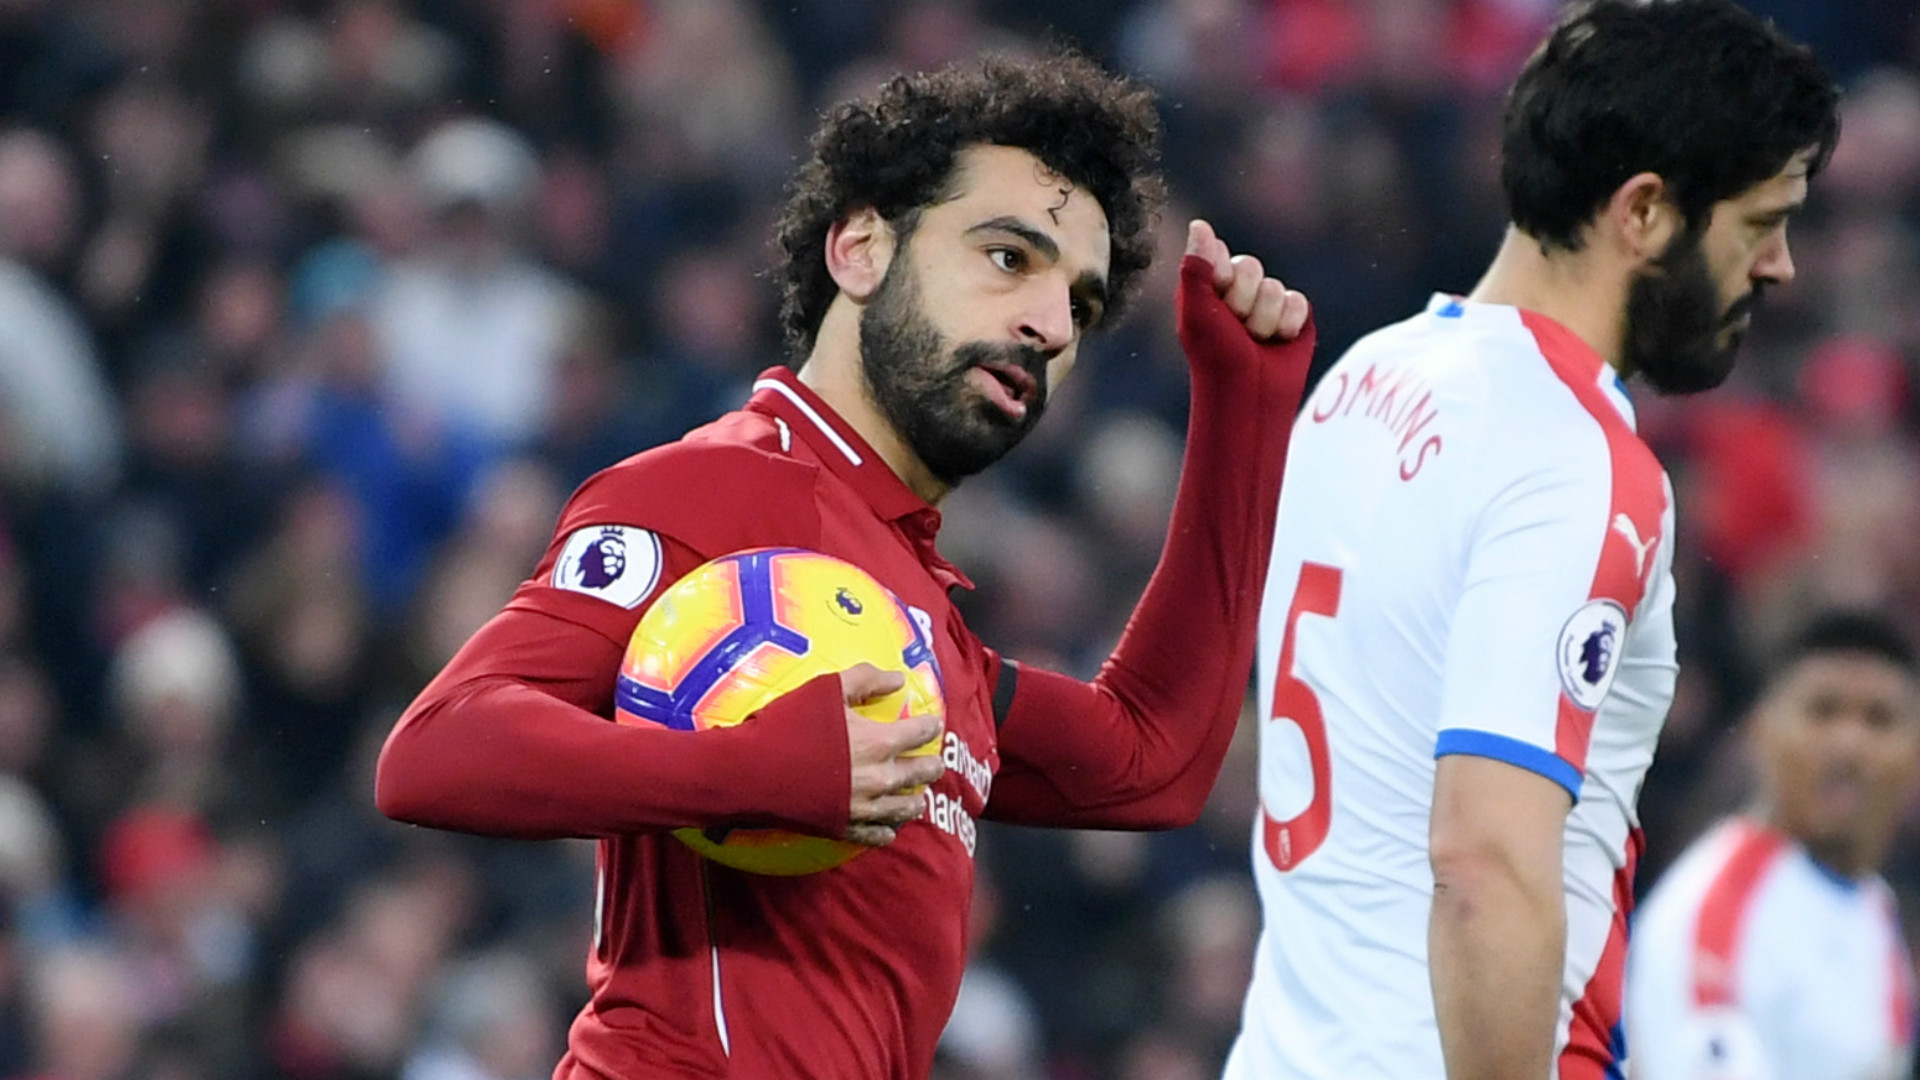 Jurgen Klopp: Maybe it's my fault Salah didn't score more goals